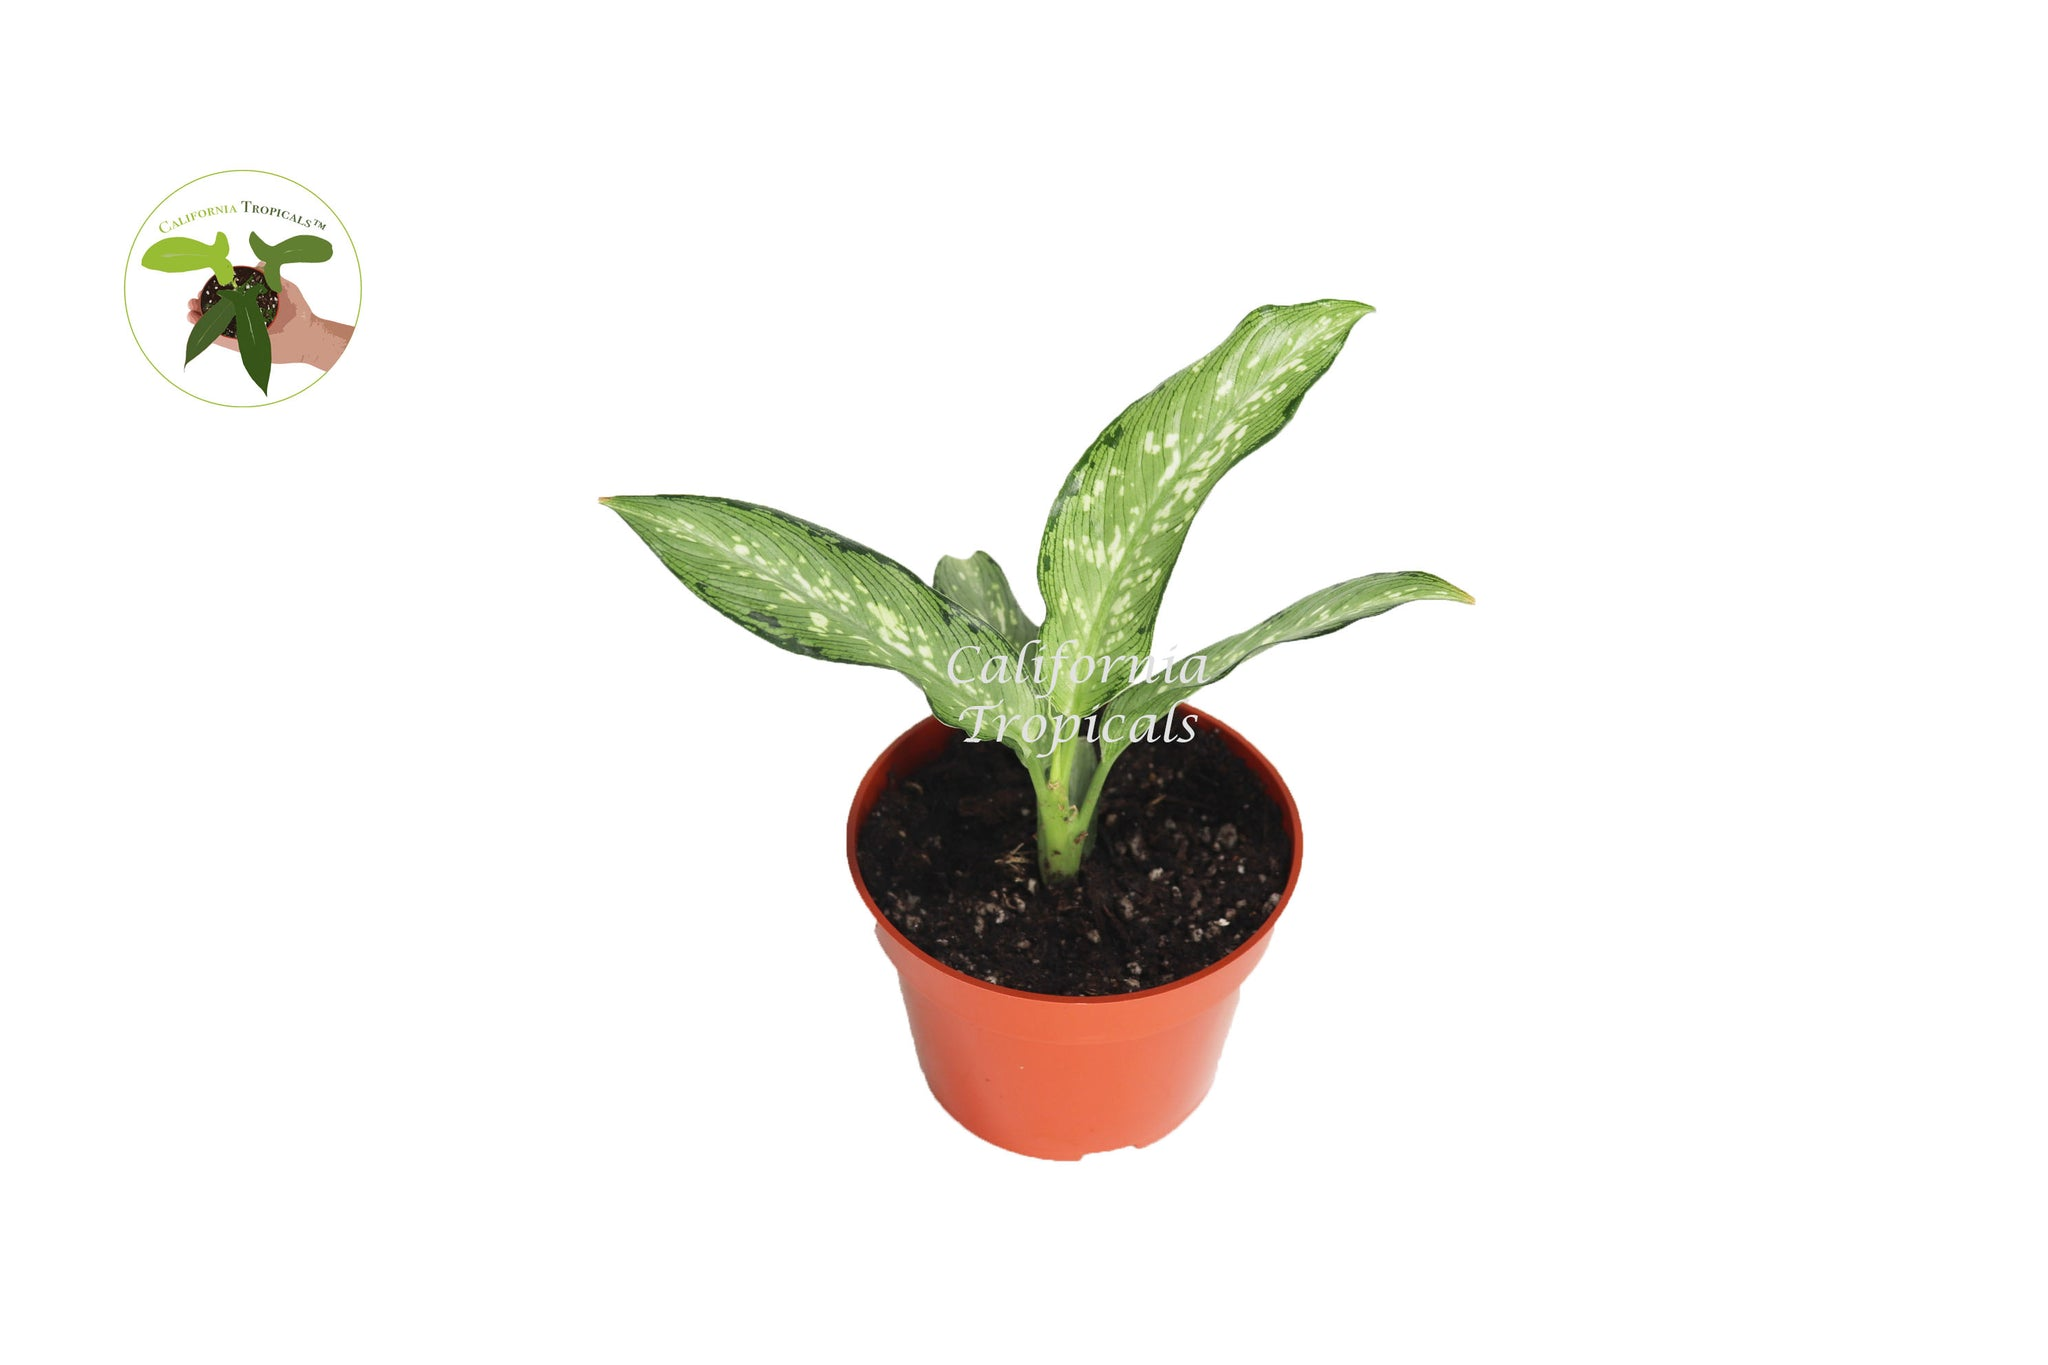 Dieffenbachia Memoria Corsii - 4'' from California Tropicals